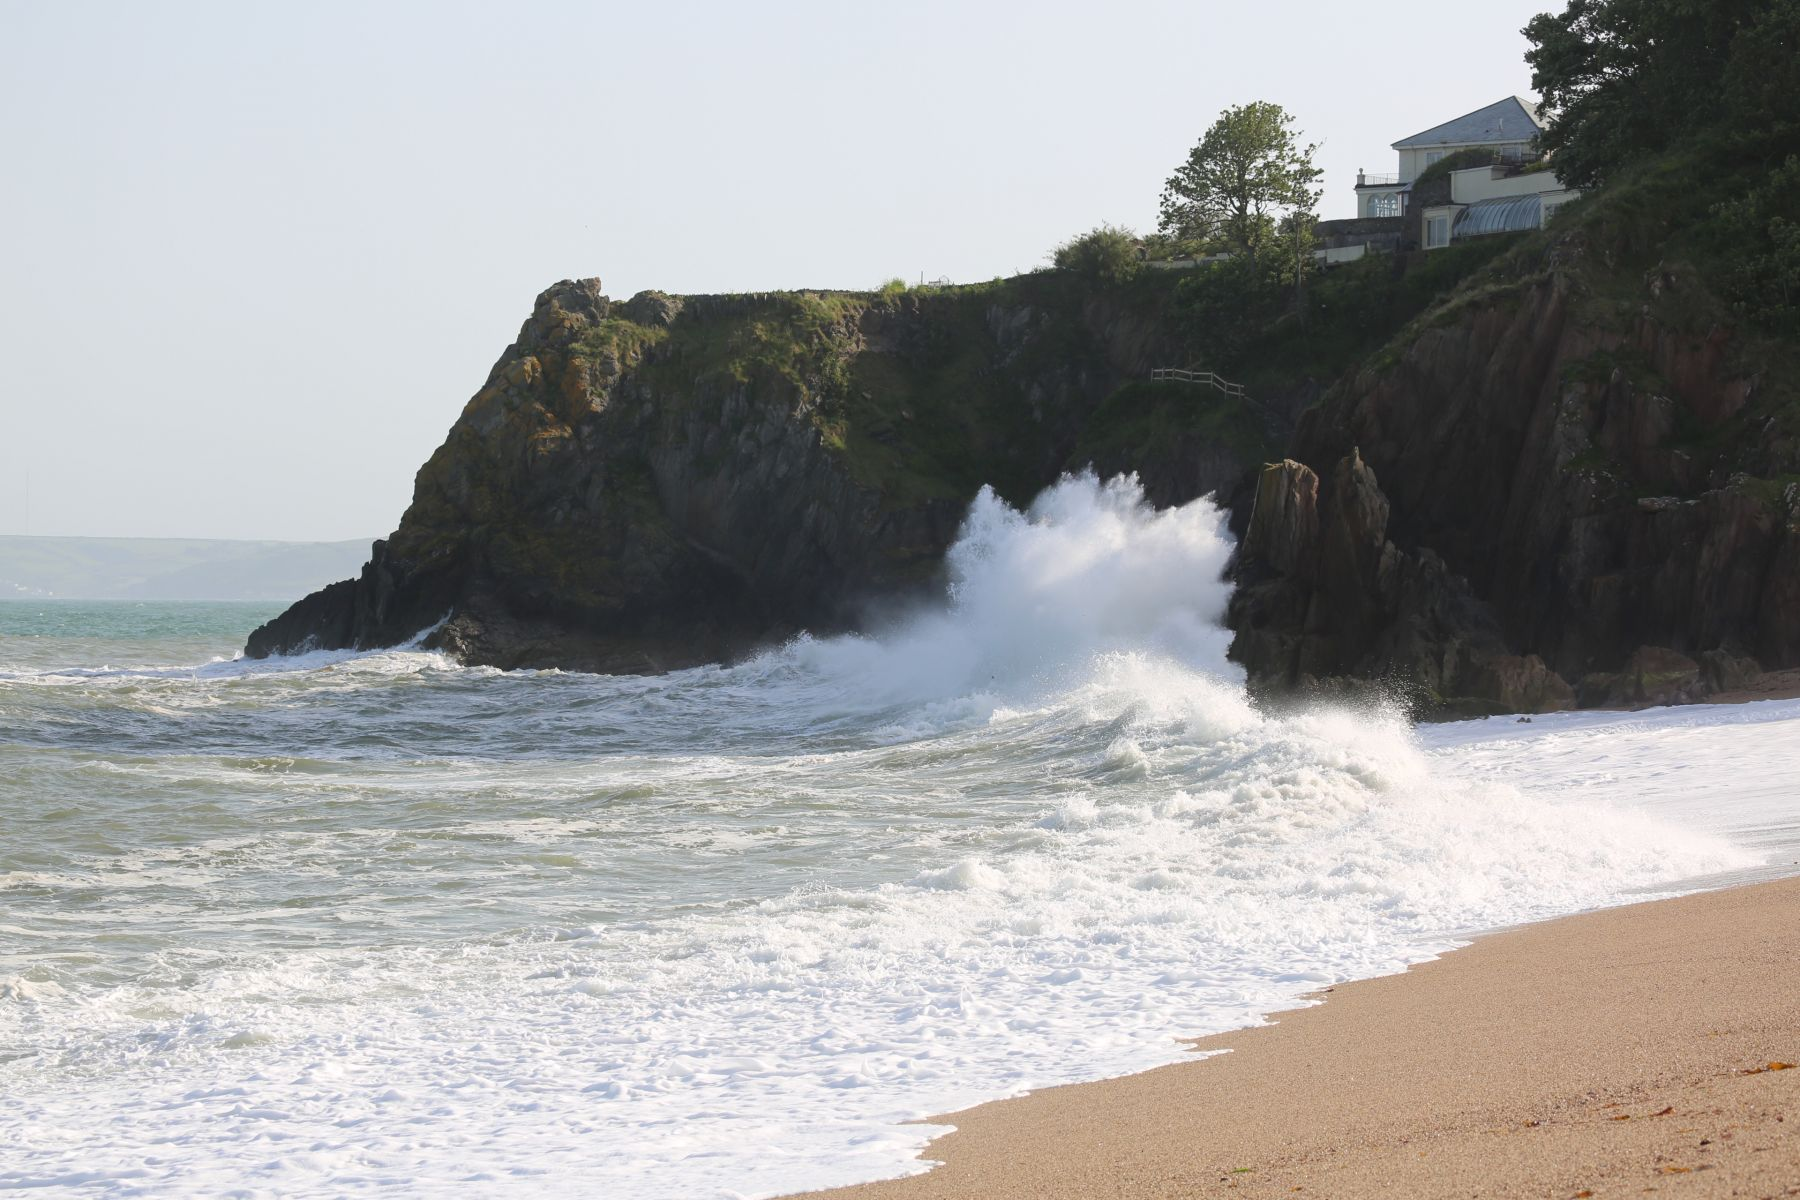 Waves at the entrance to Jenny's Cove where the kayakers came ashore